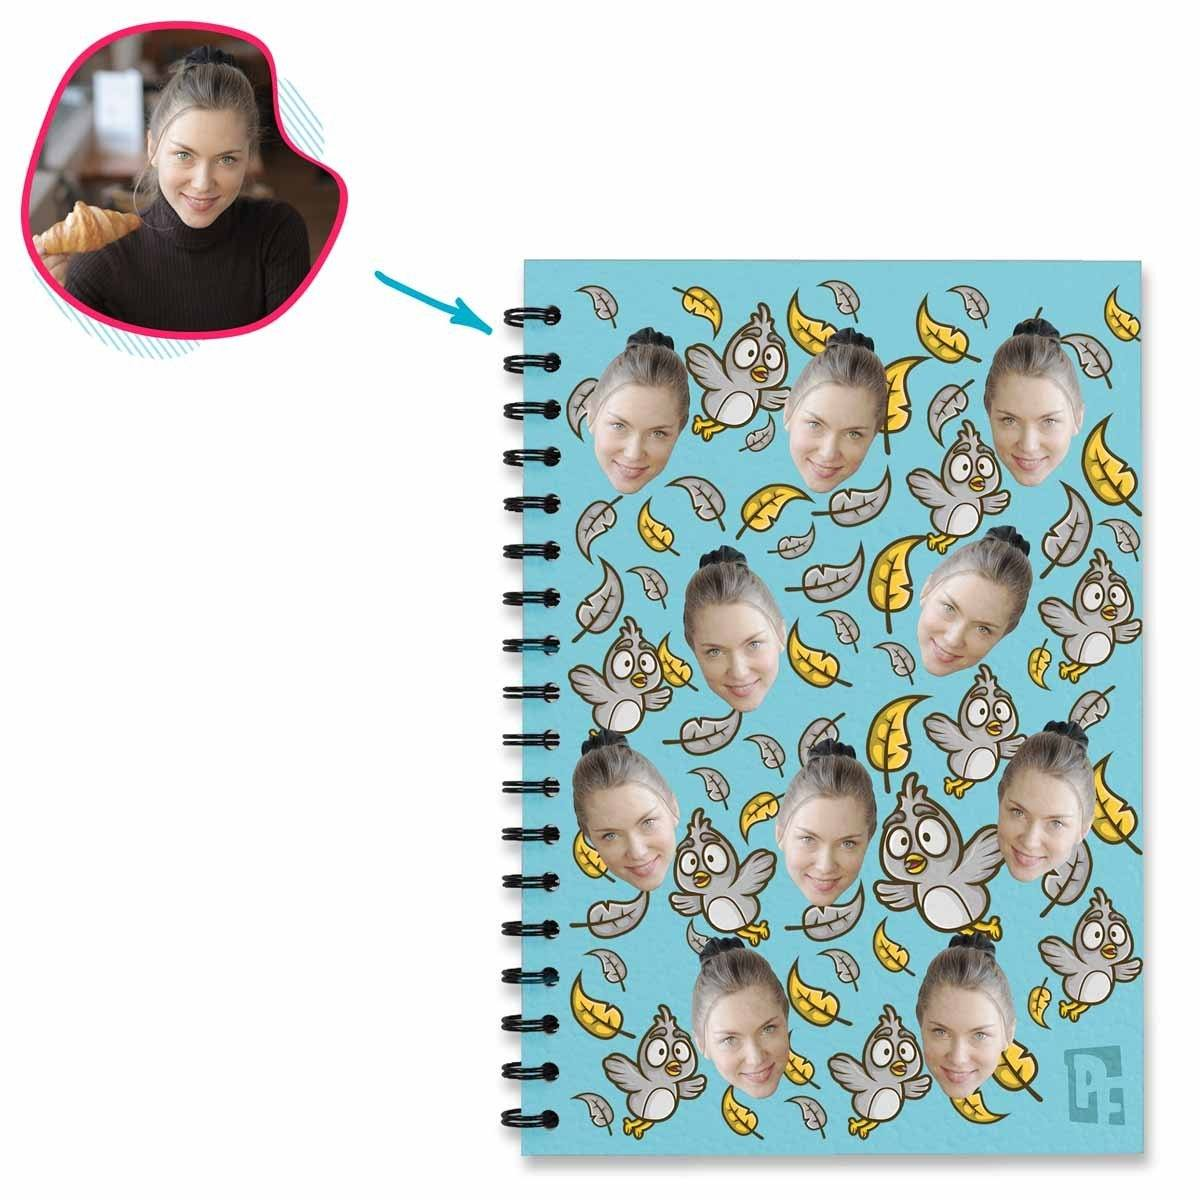 blue Bird Notebook personalized with photo of face printed on them